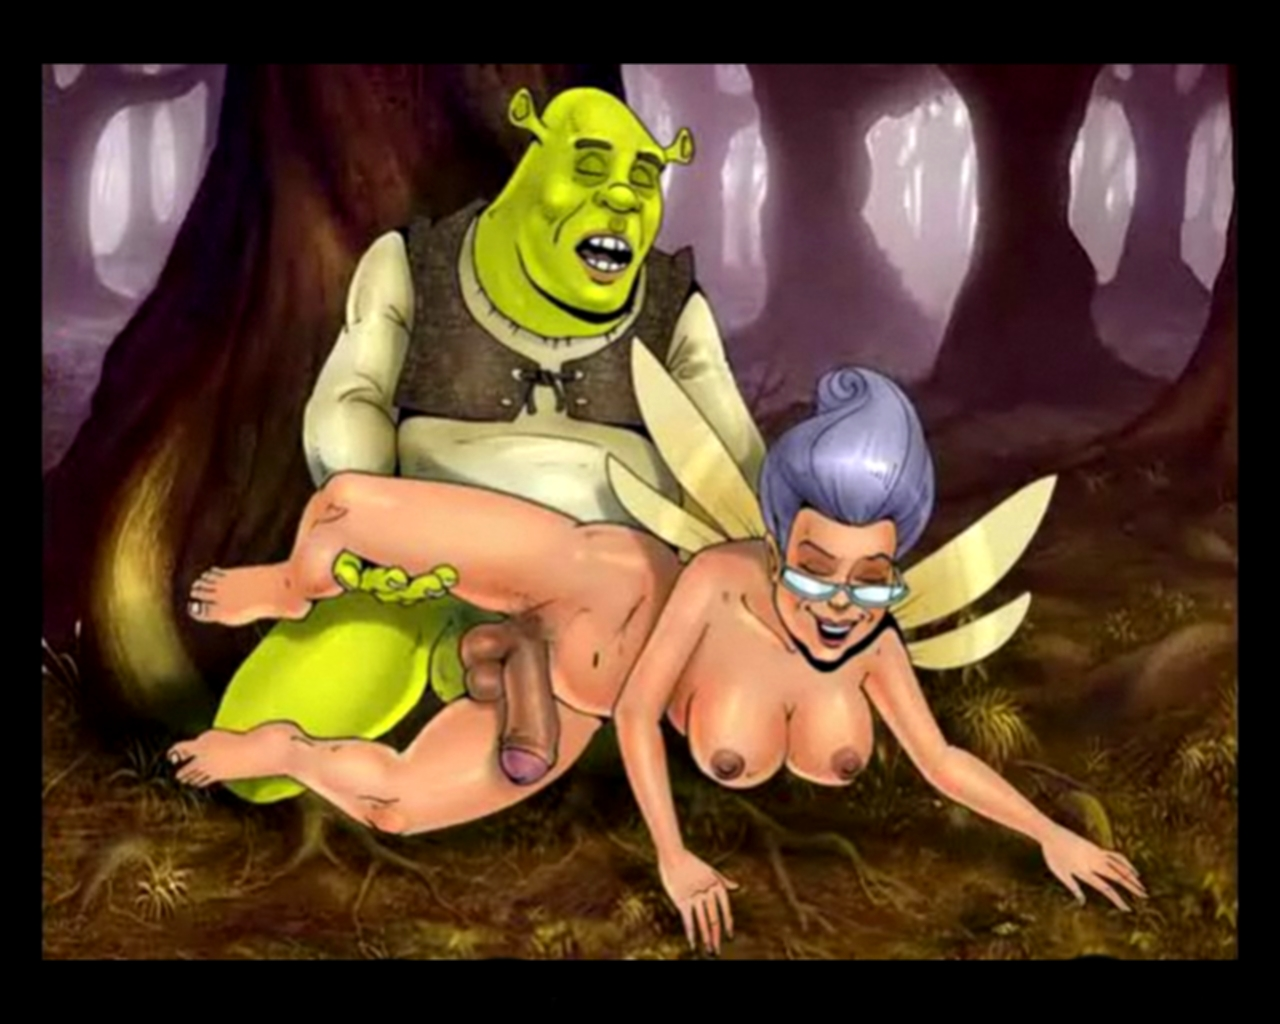 Nude shrek porn toons photos cartoon natural singles